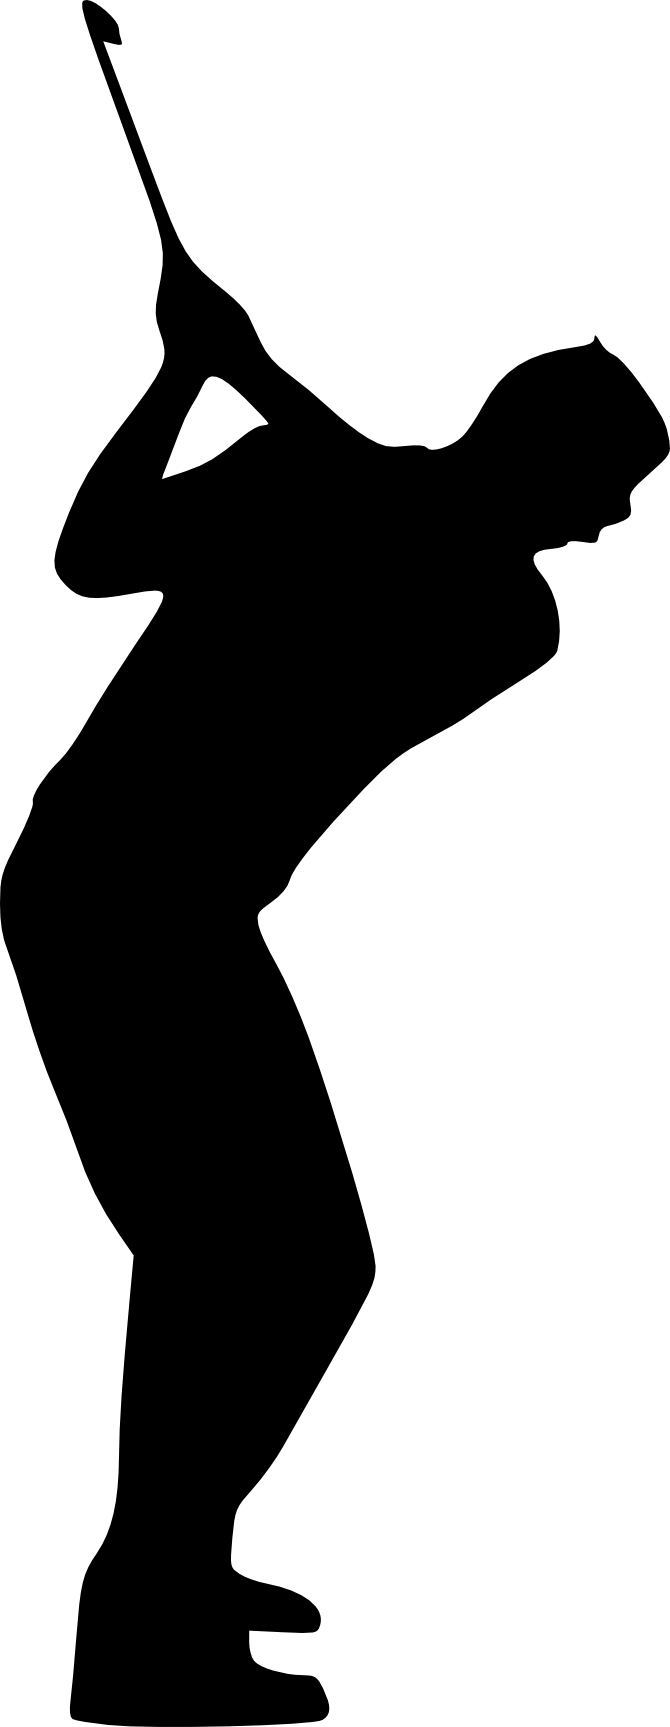 Spaceship clipart silhouette. Golf drawing at getdrawings